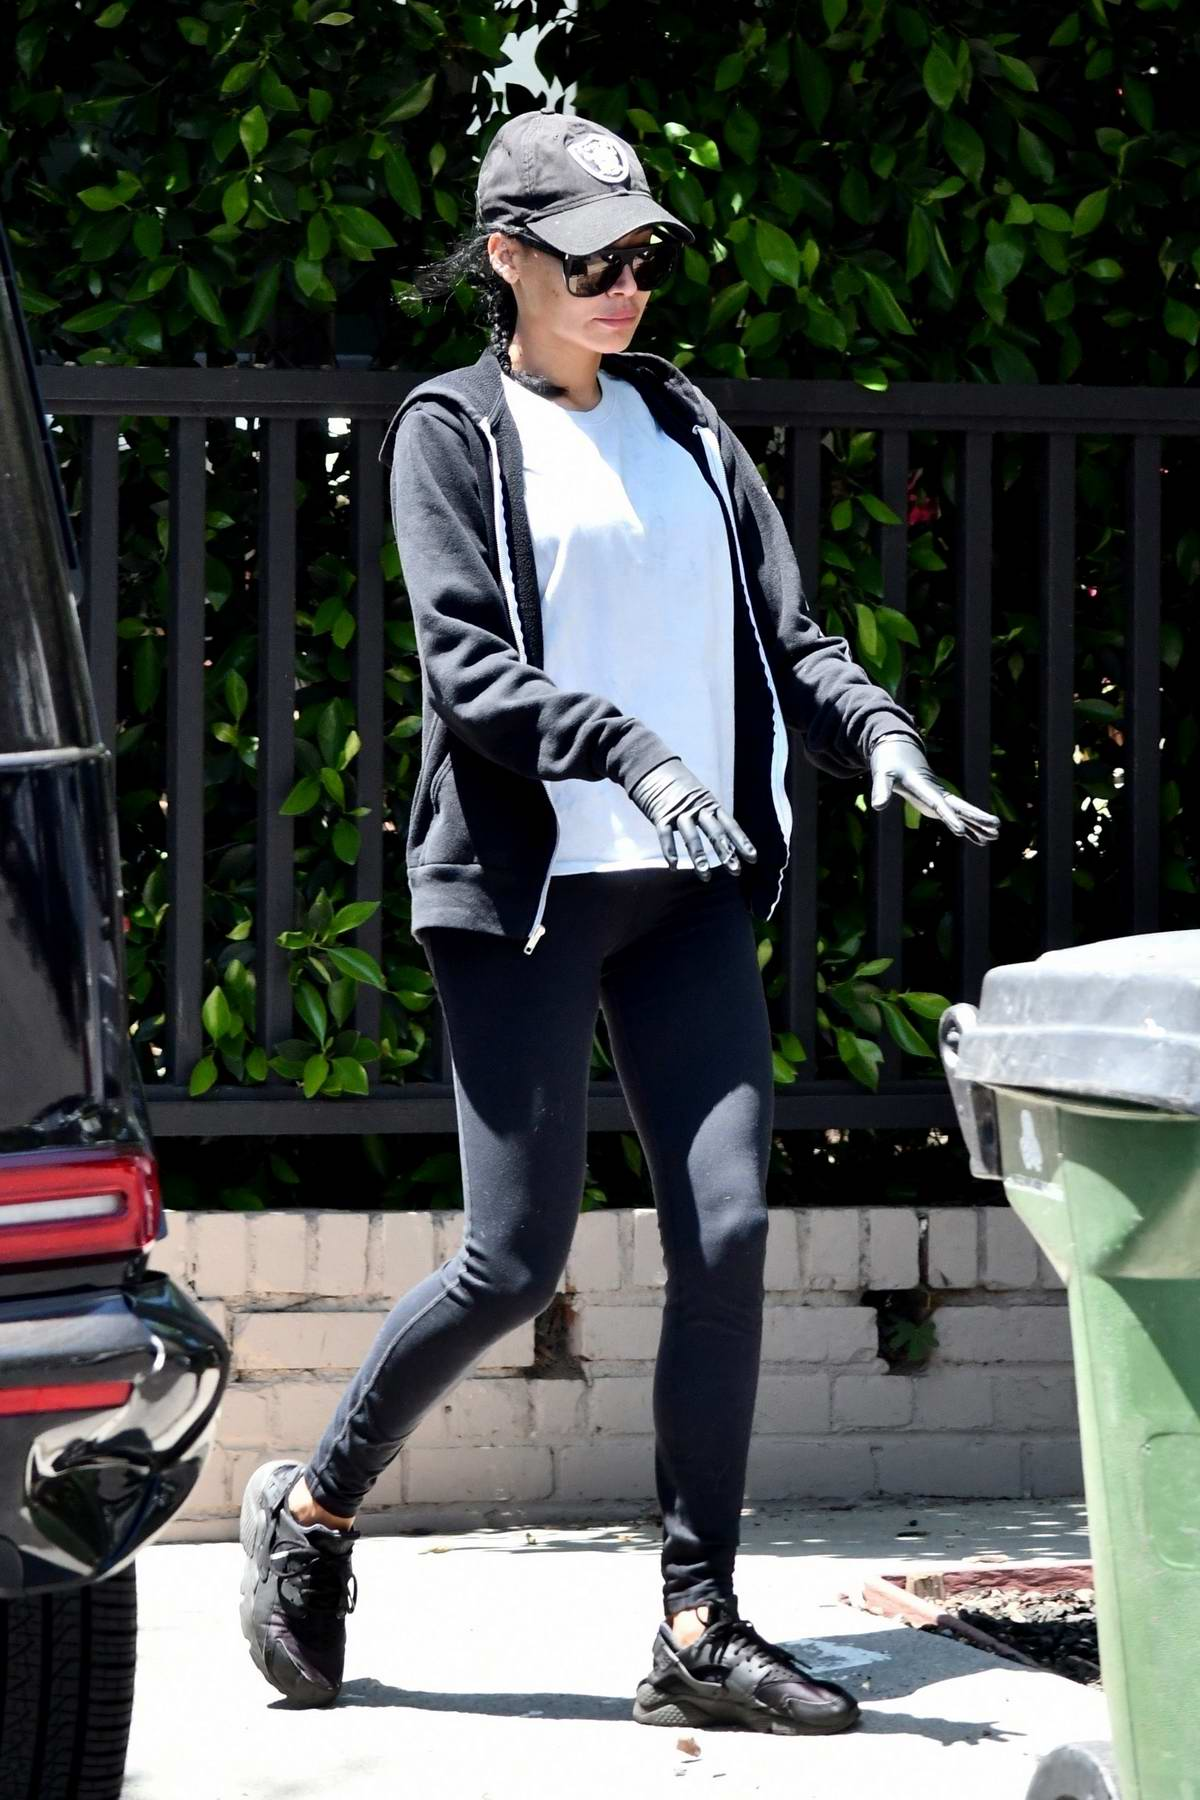 Naya Rivera steps out to grab her trash cans after garbage day in Los Feliz, California